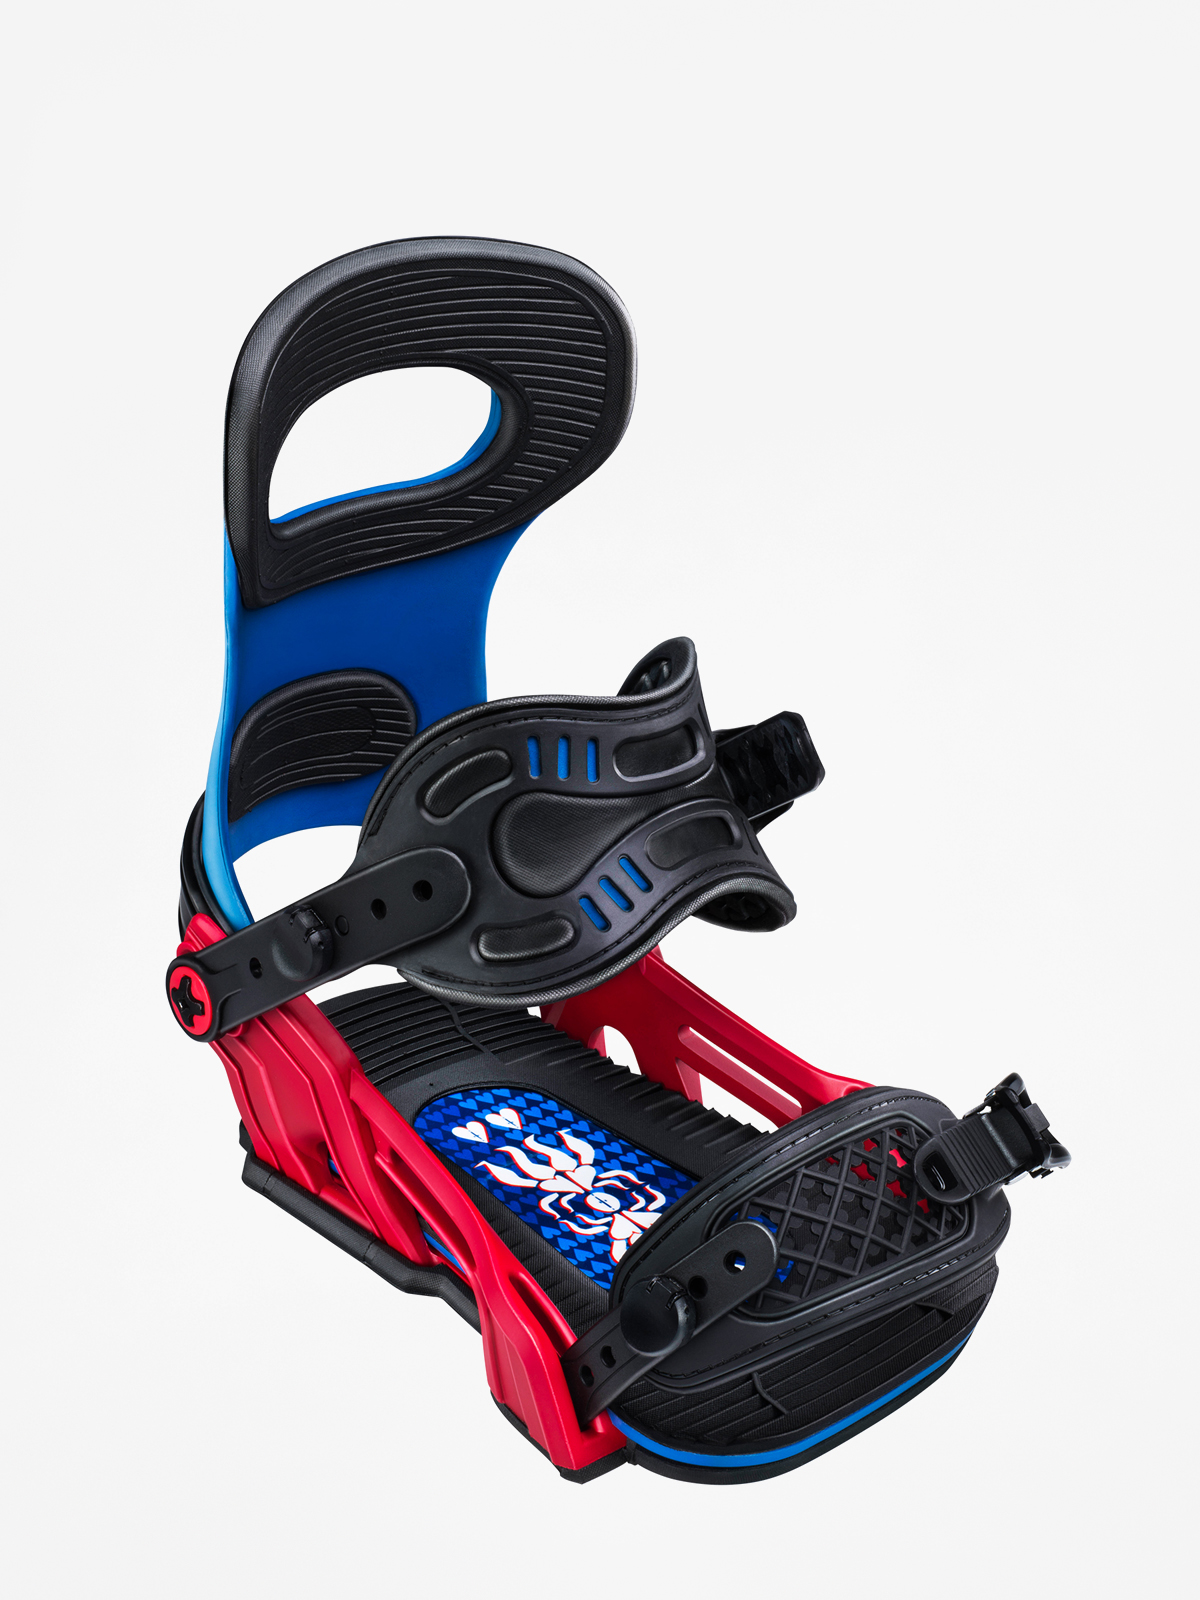 Wiu0105zania snowboardowe Bent Metal Transfer (blue/red)